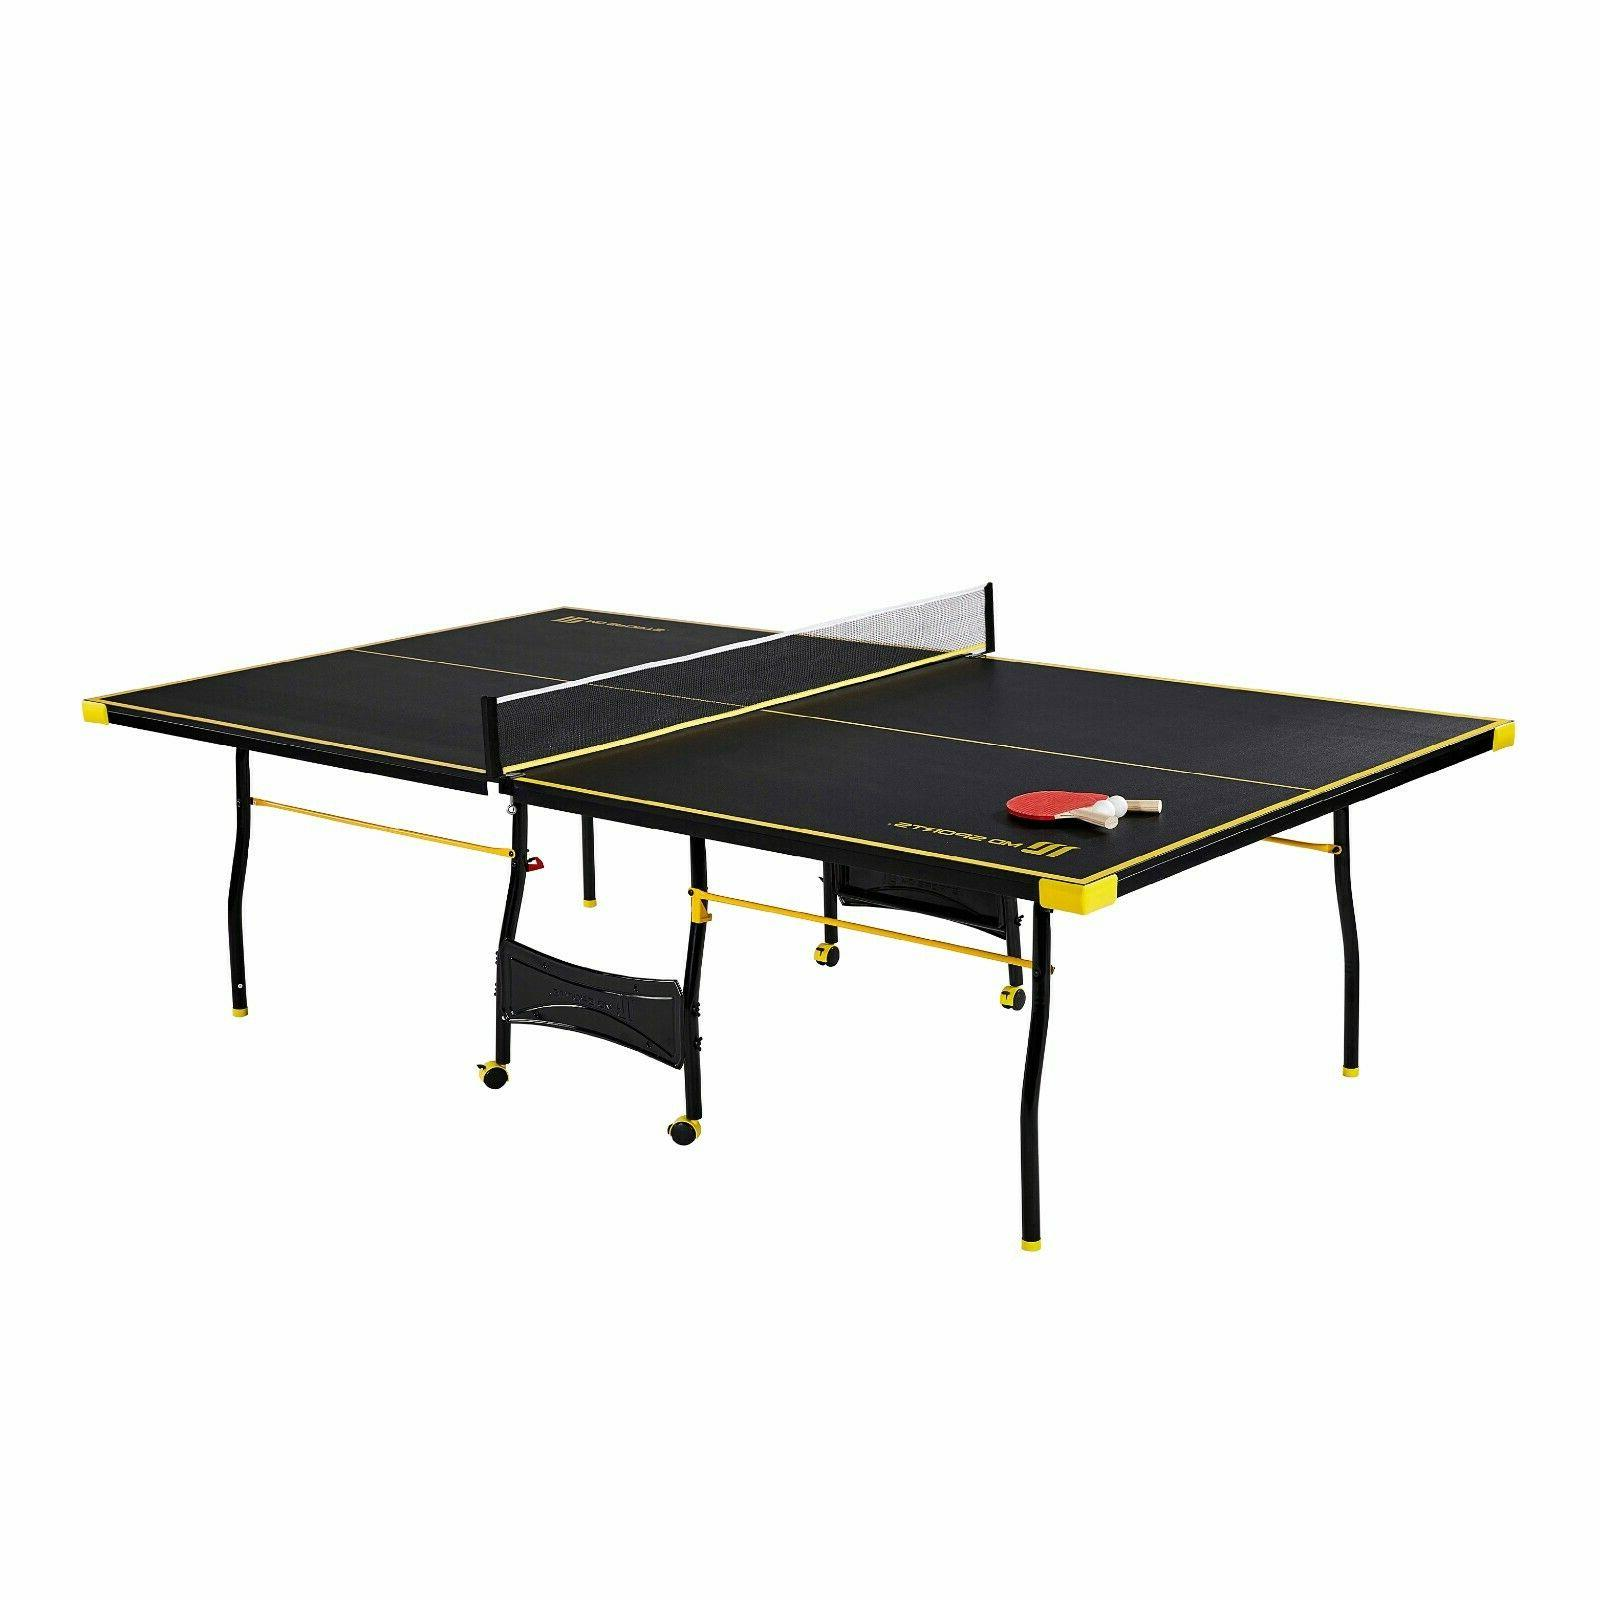 official size 15mm 4 pcs indoor table